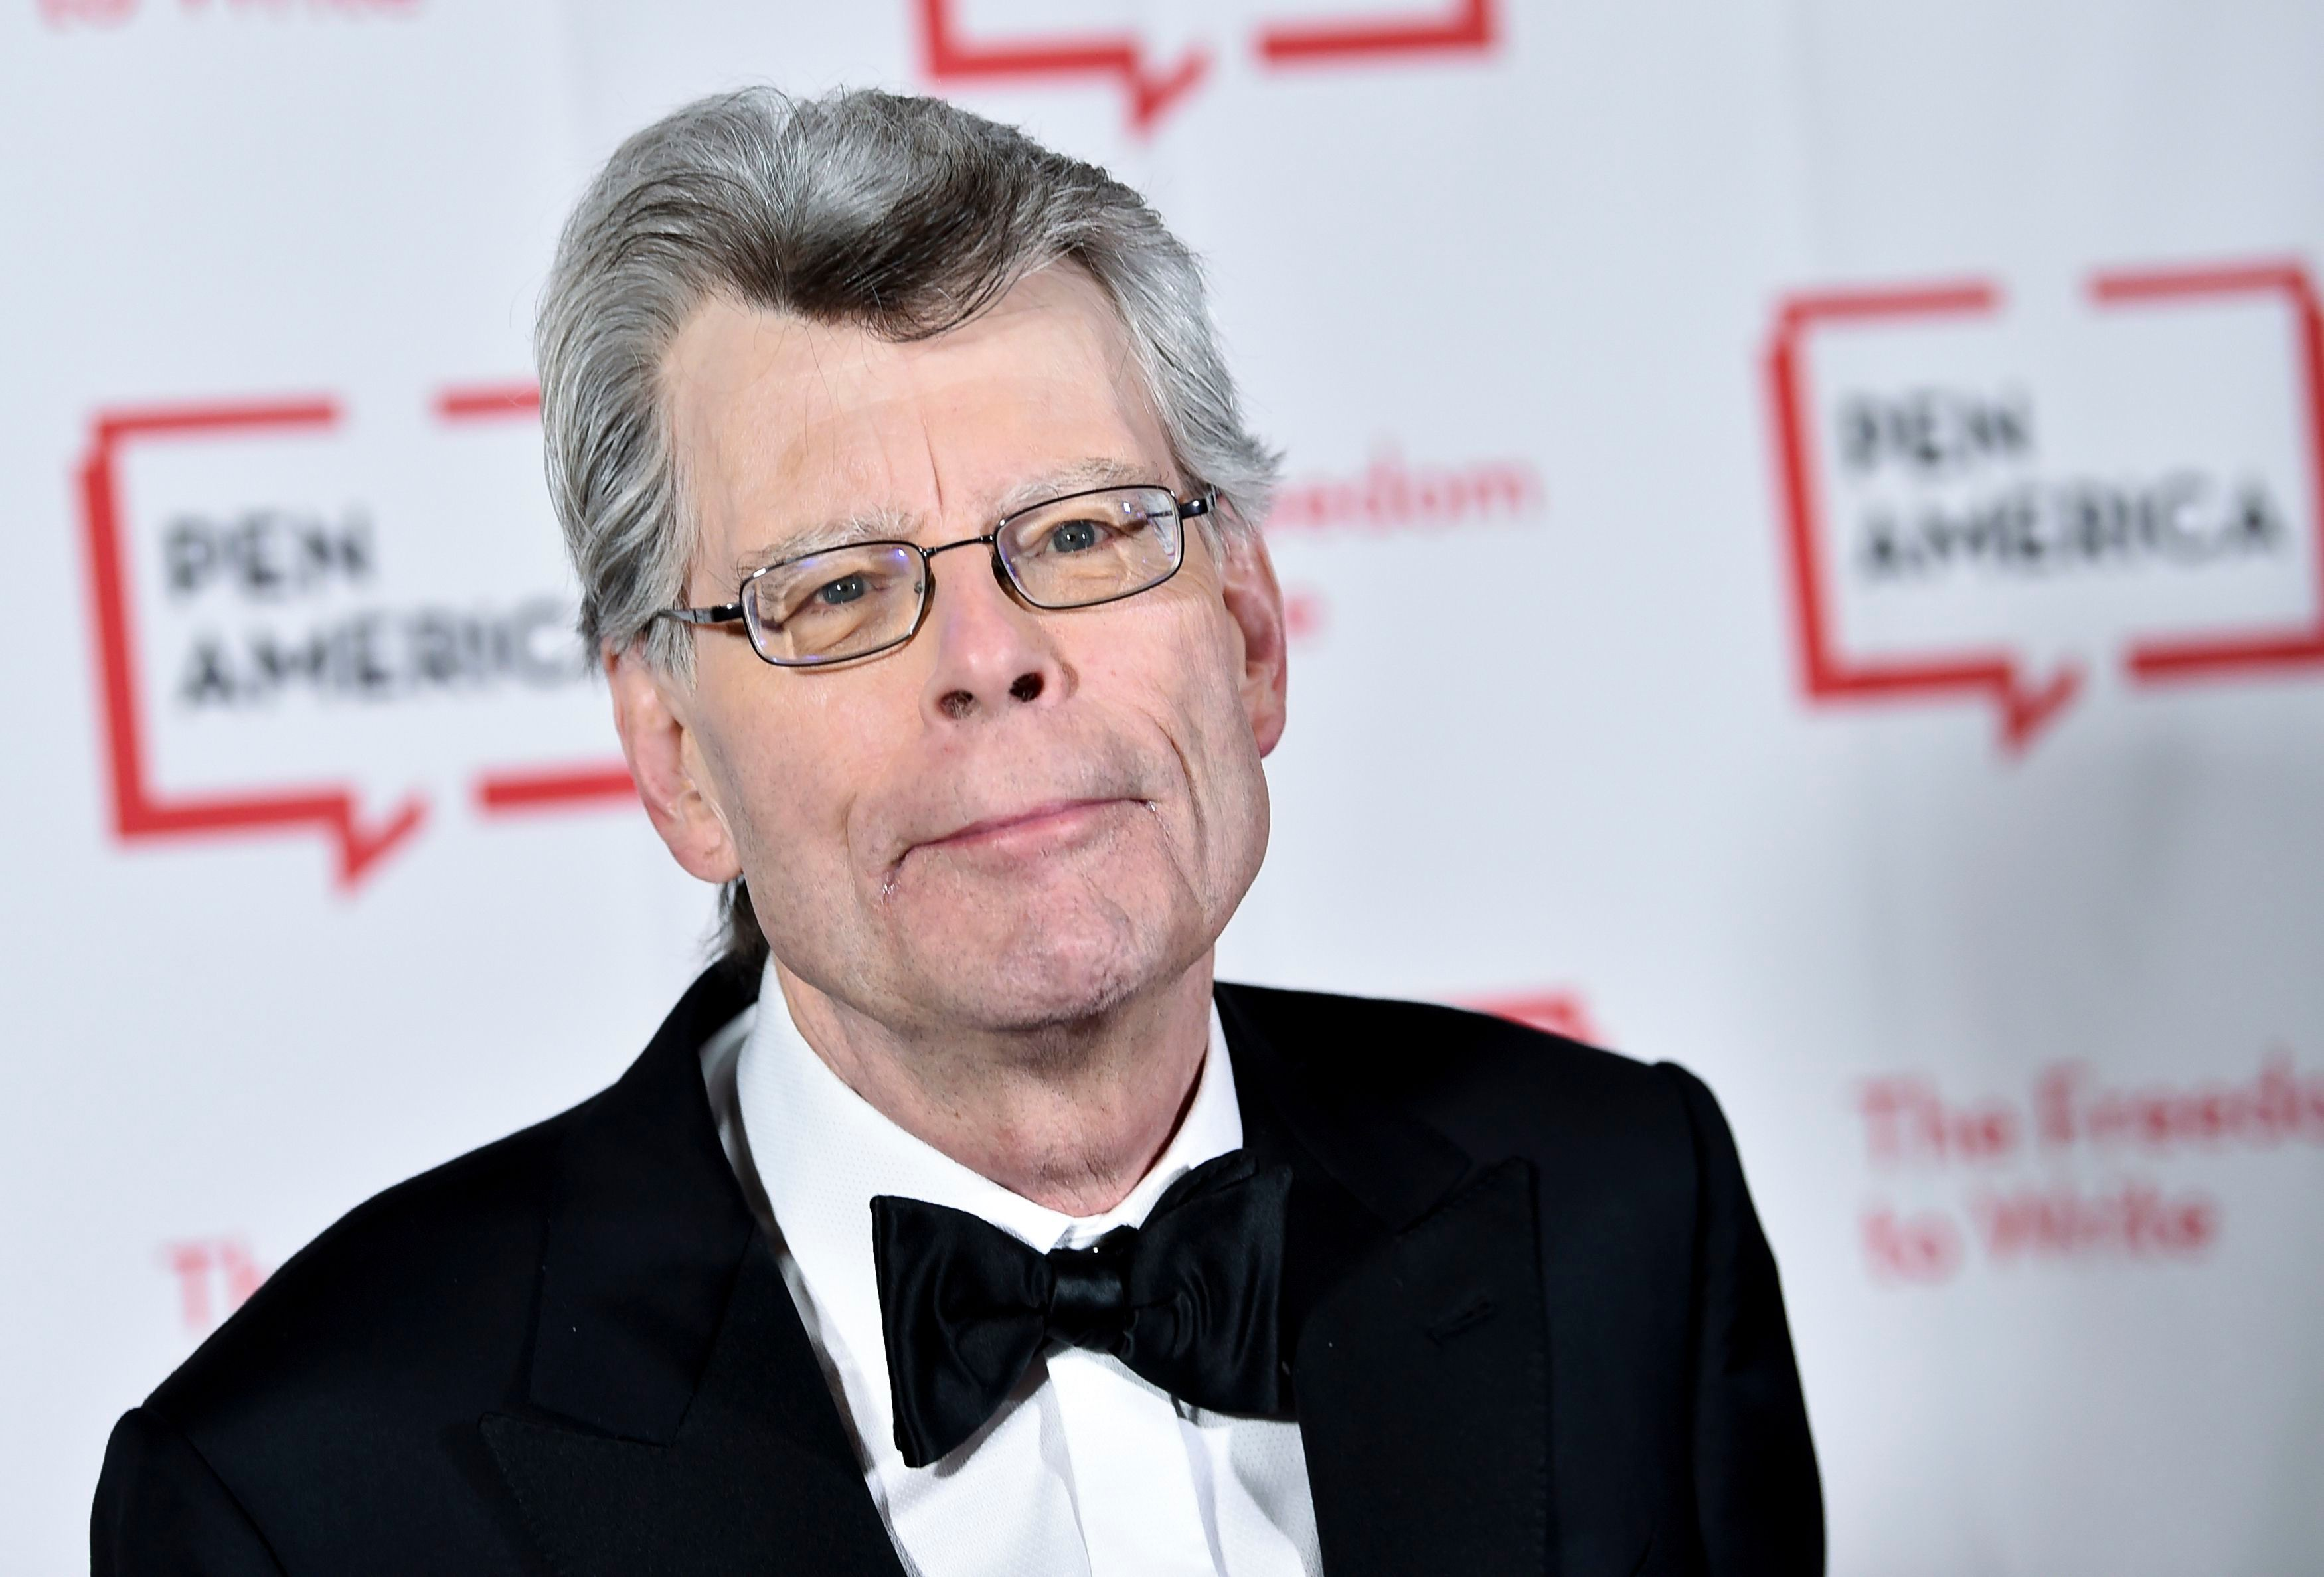 Steben King Halloween Show 2020 Stephen King Helpfully Posts 'The Stand' Chapter That Explains